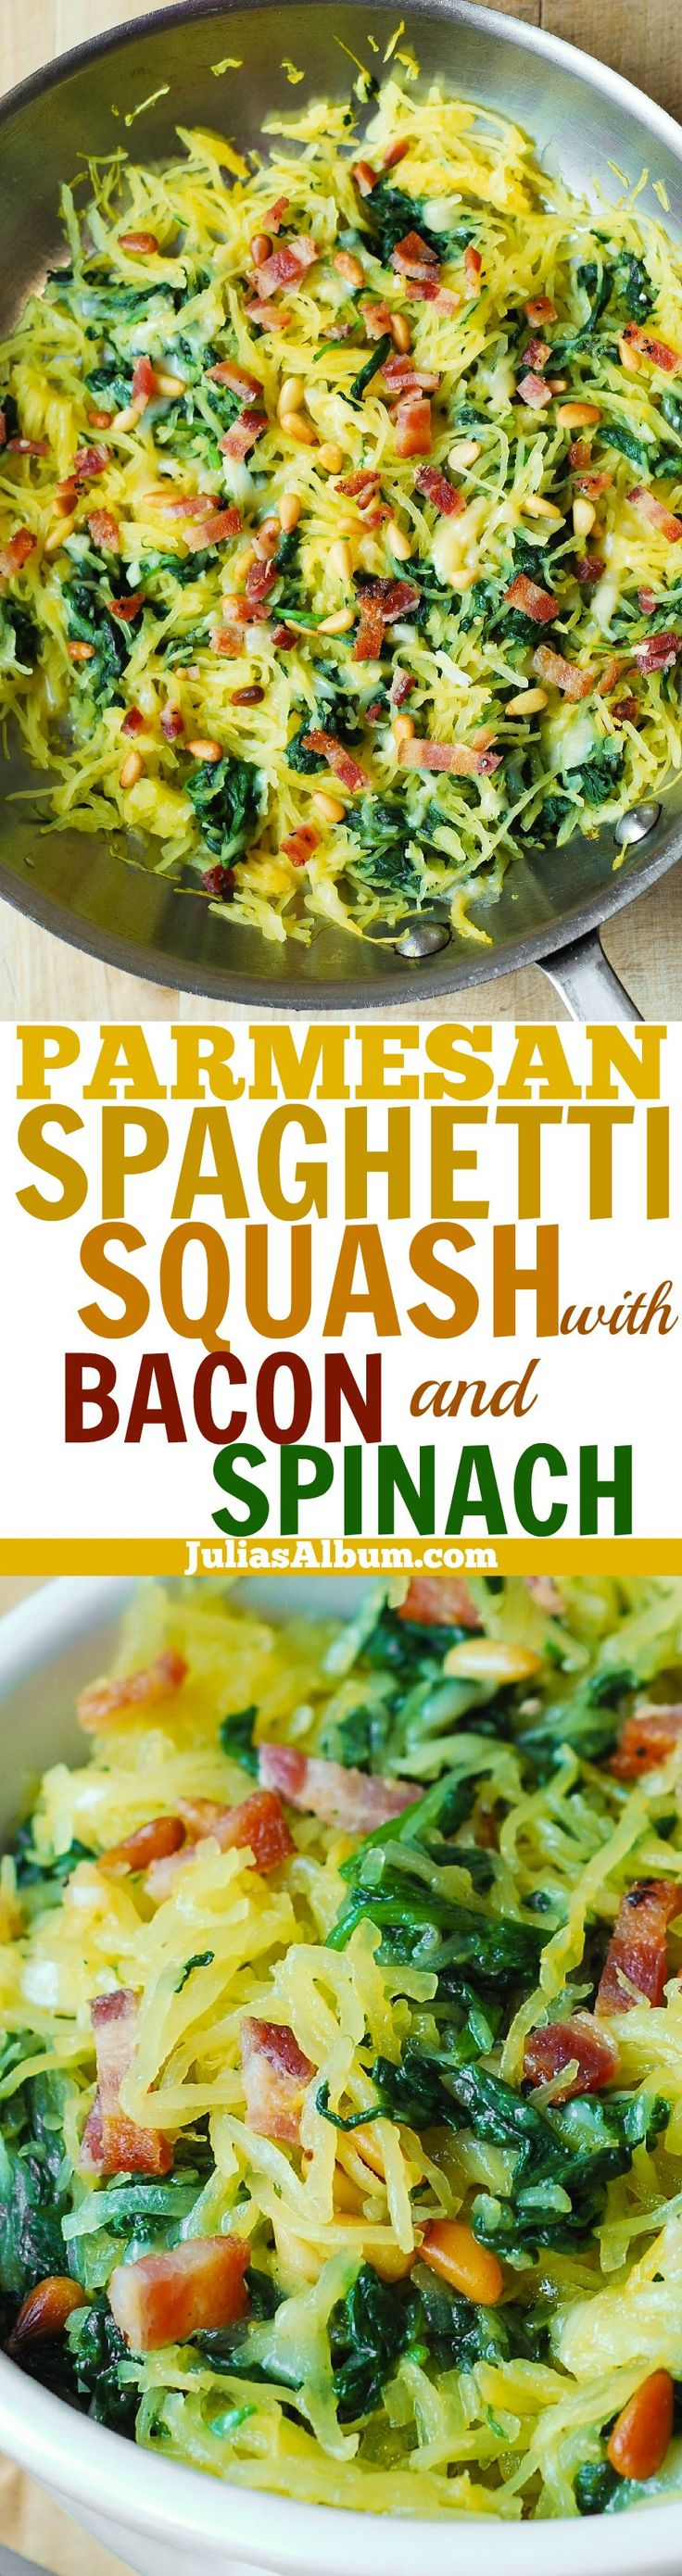 Garlic Spaghetti Squash, Spinach, and Bacon, + melted Parmesan cheese and toasted pine nuts. Delicious